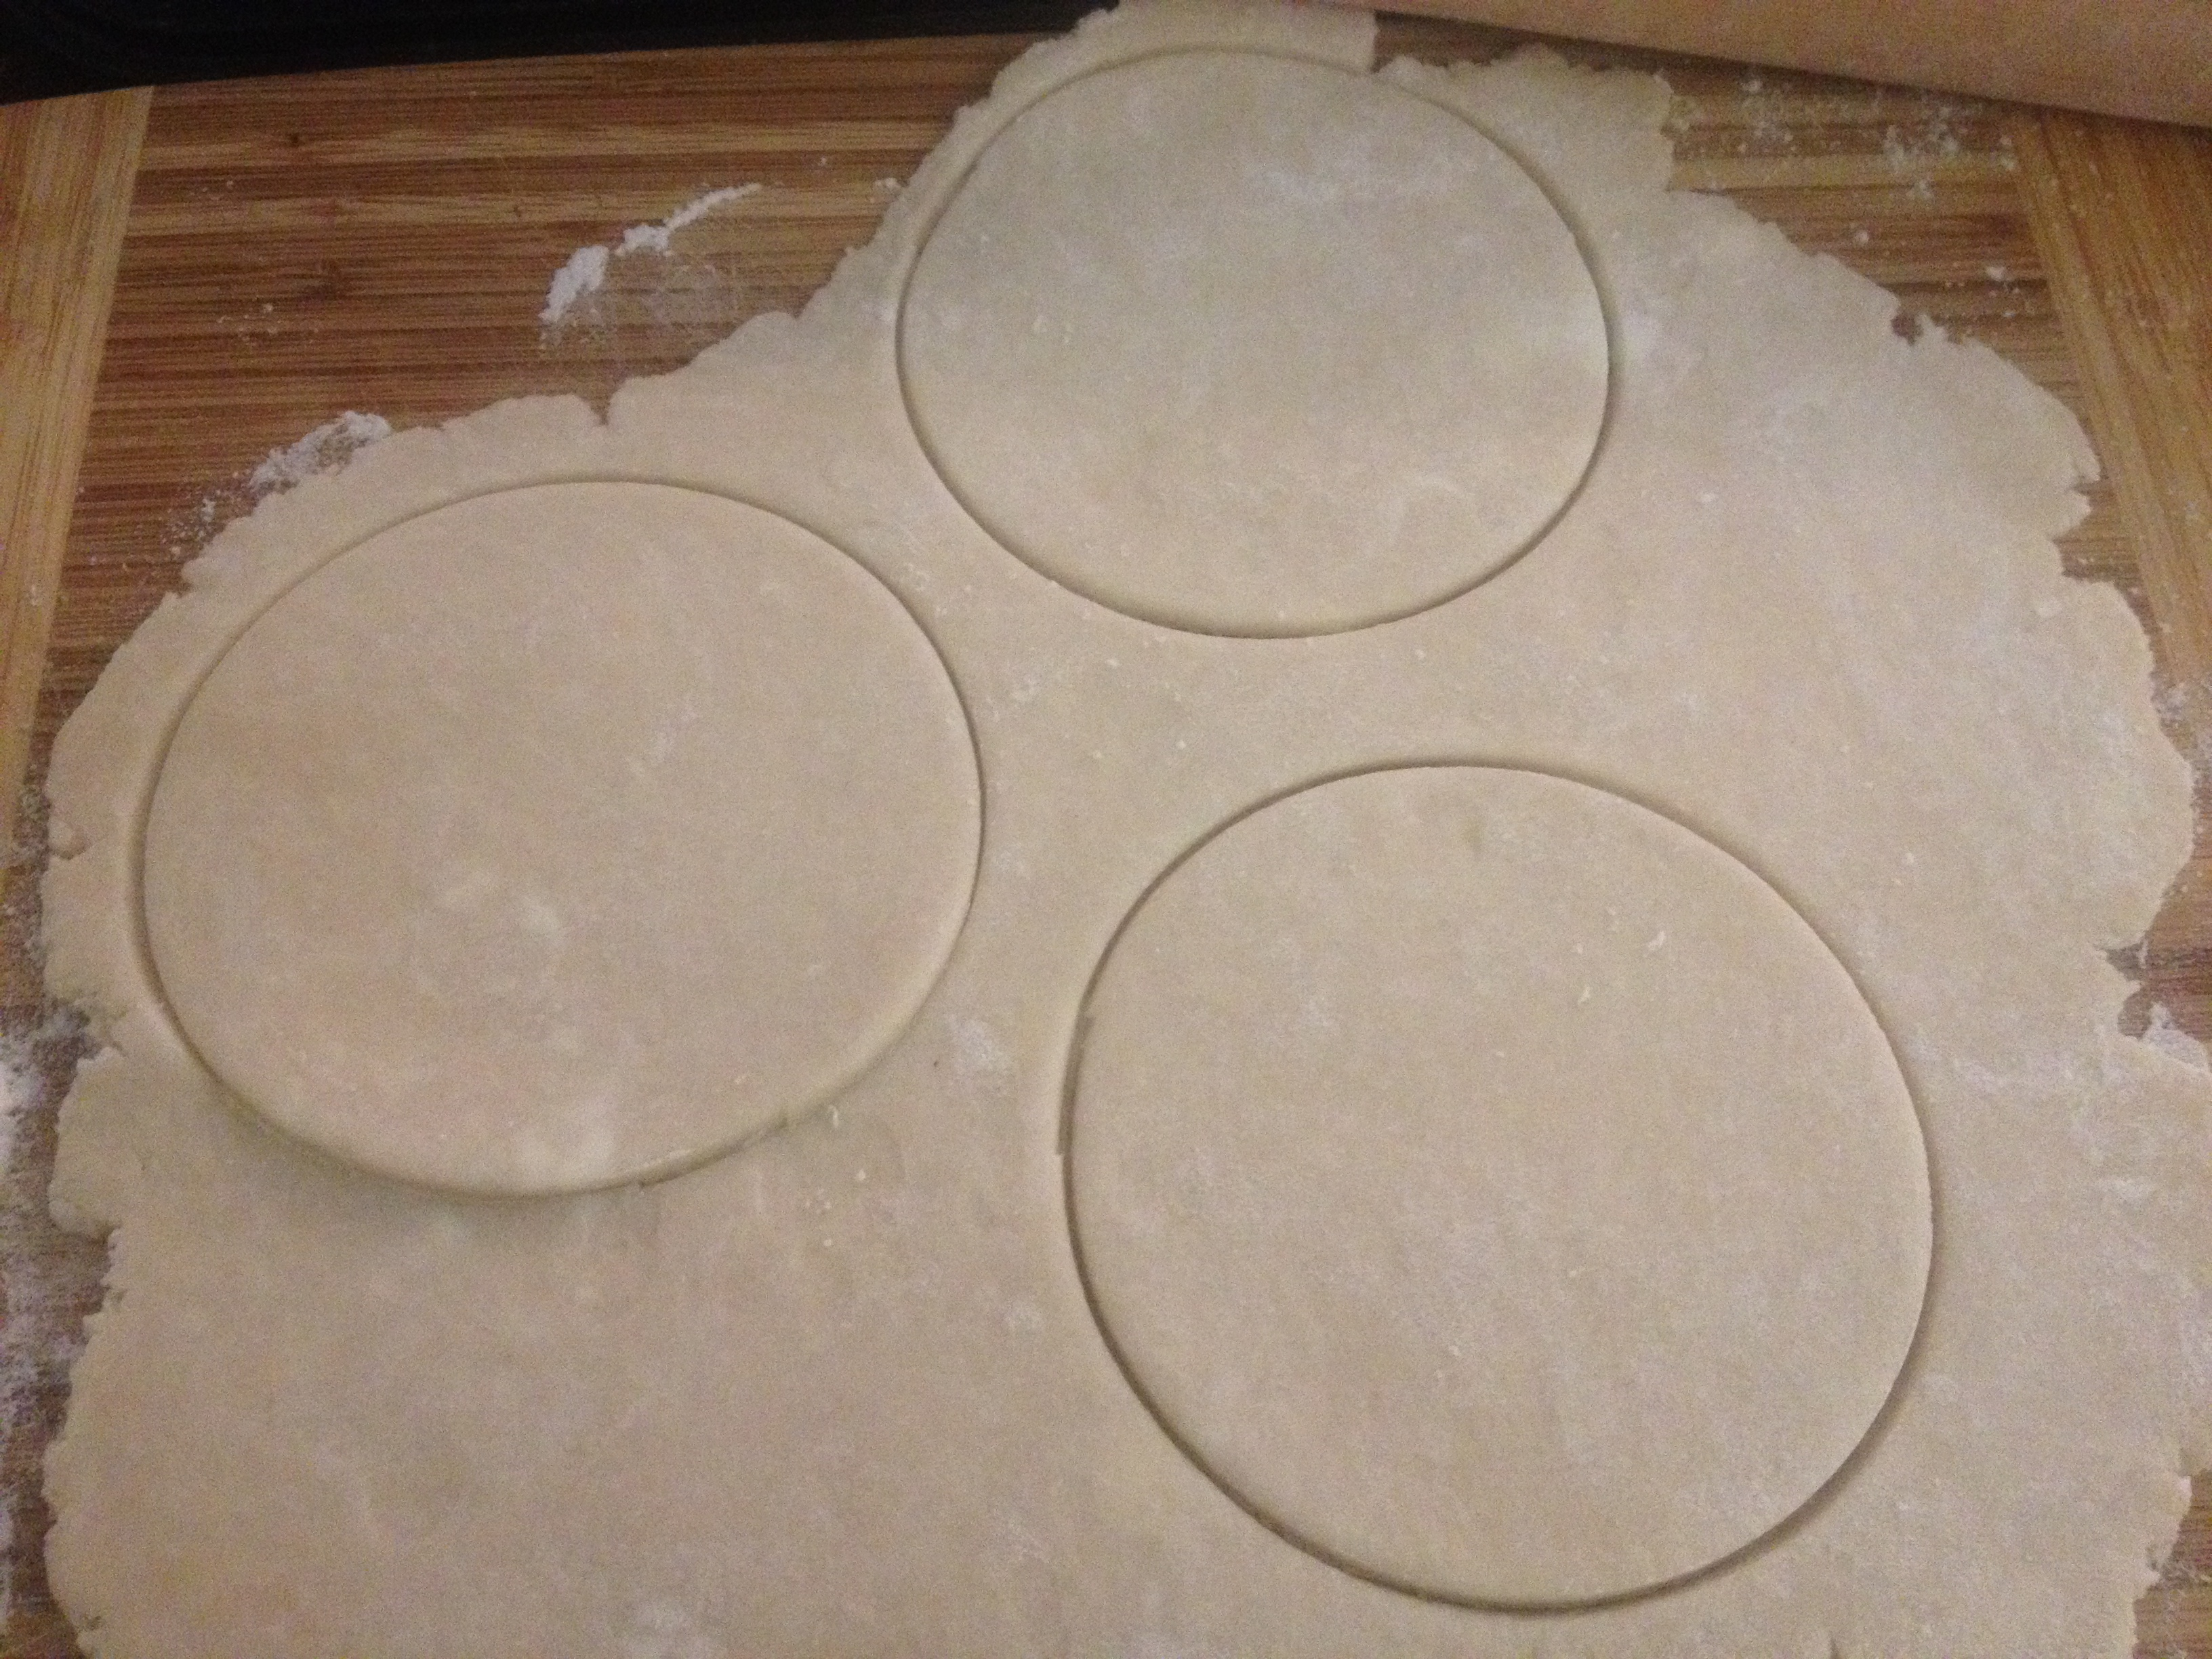 make sure your dough is the same thickness